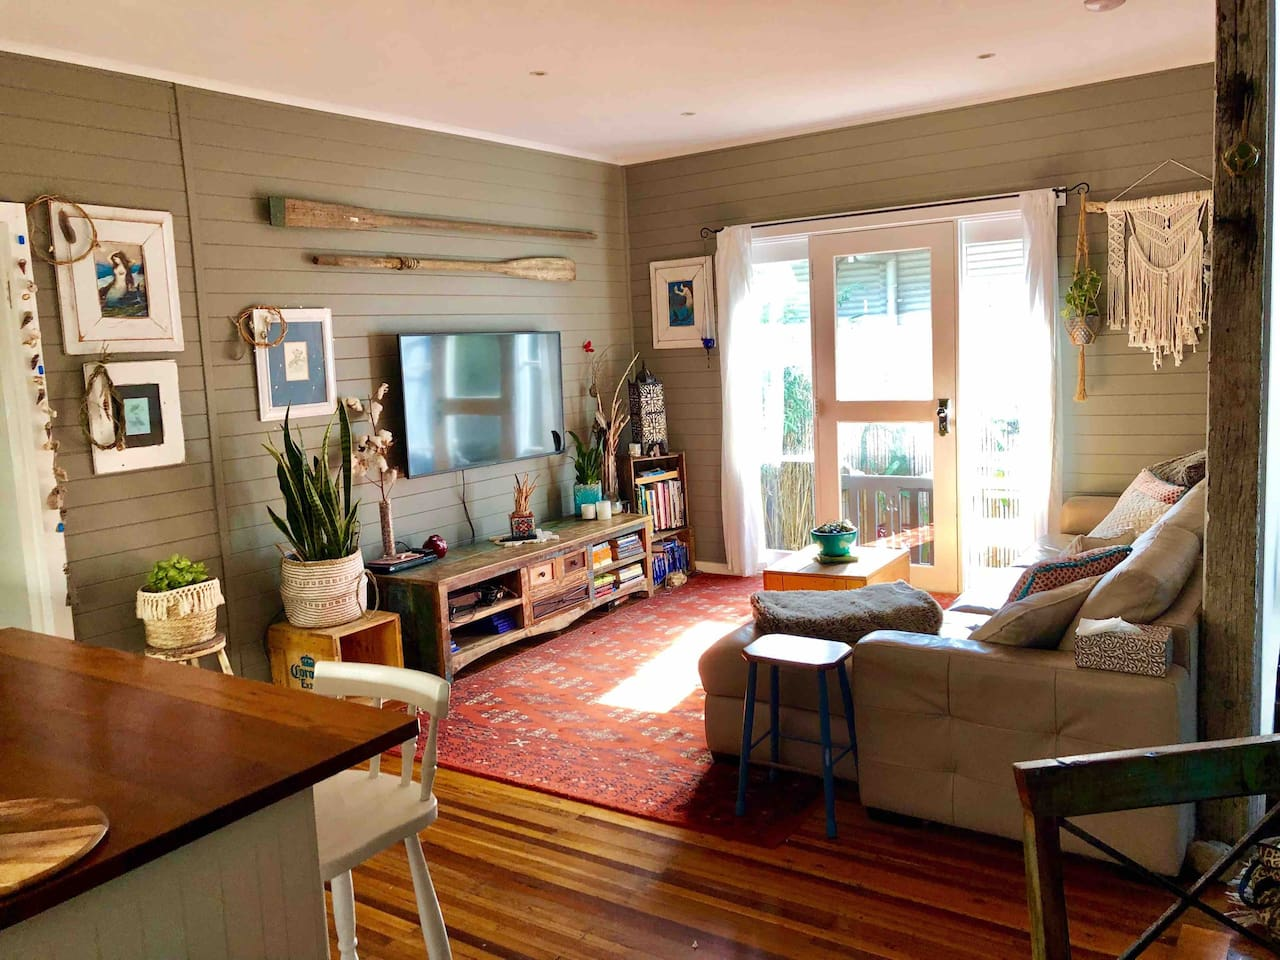 Large open plan living and dining area adjoining full kitchen. The house is beautifully presented as beachside boho chic. It has all the touches of home with a wonderful holiday feel.